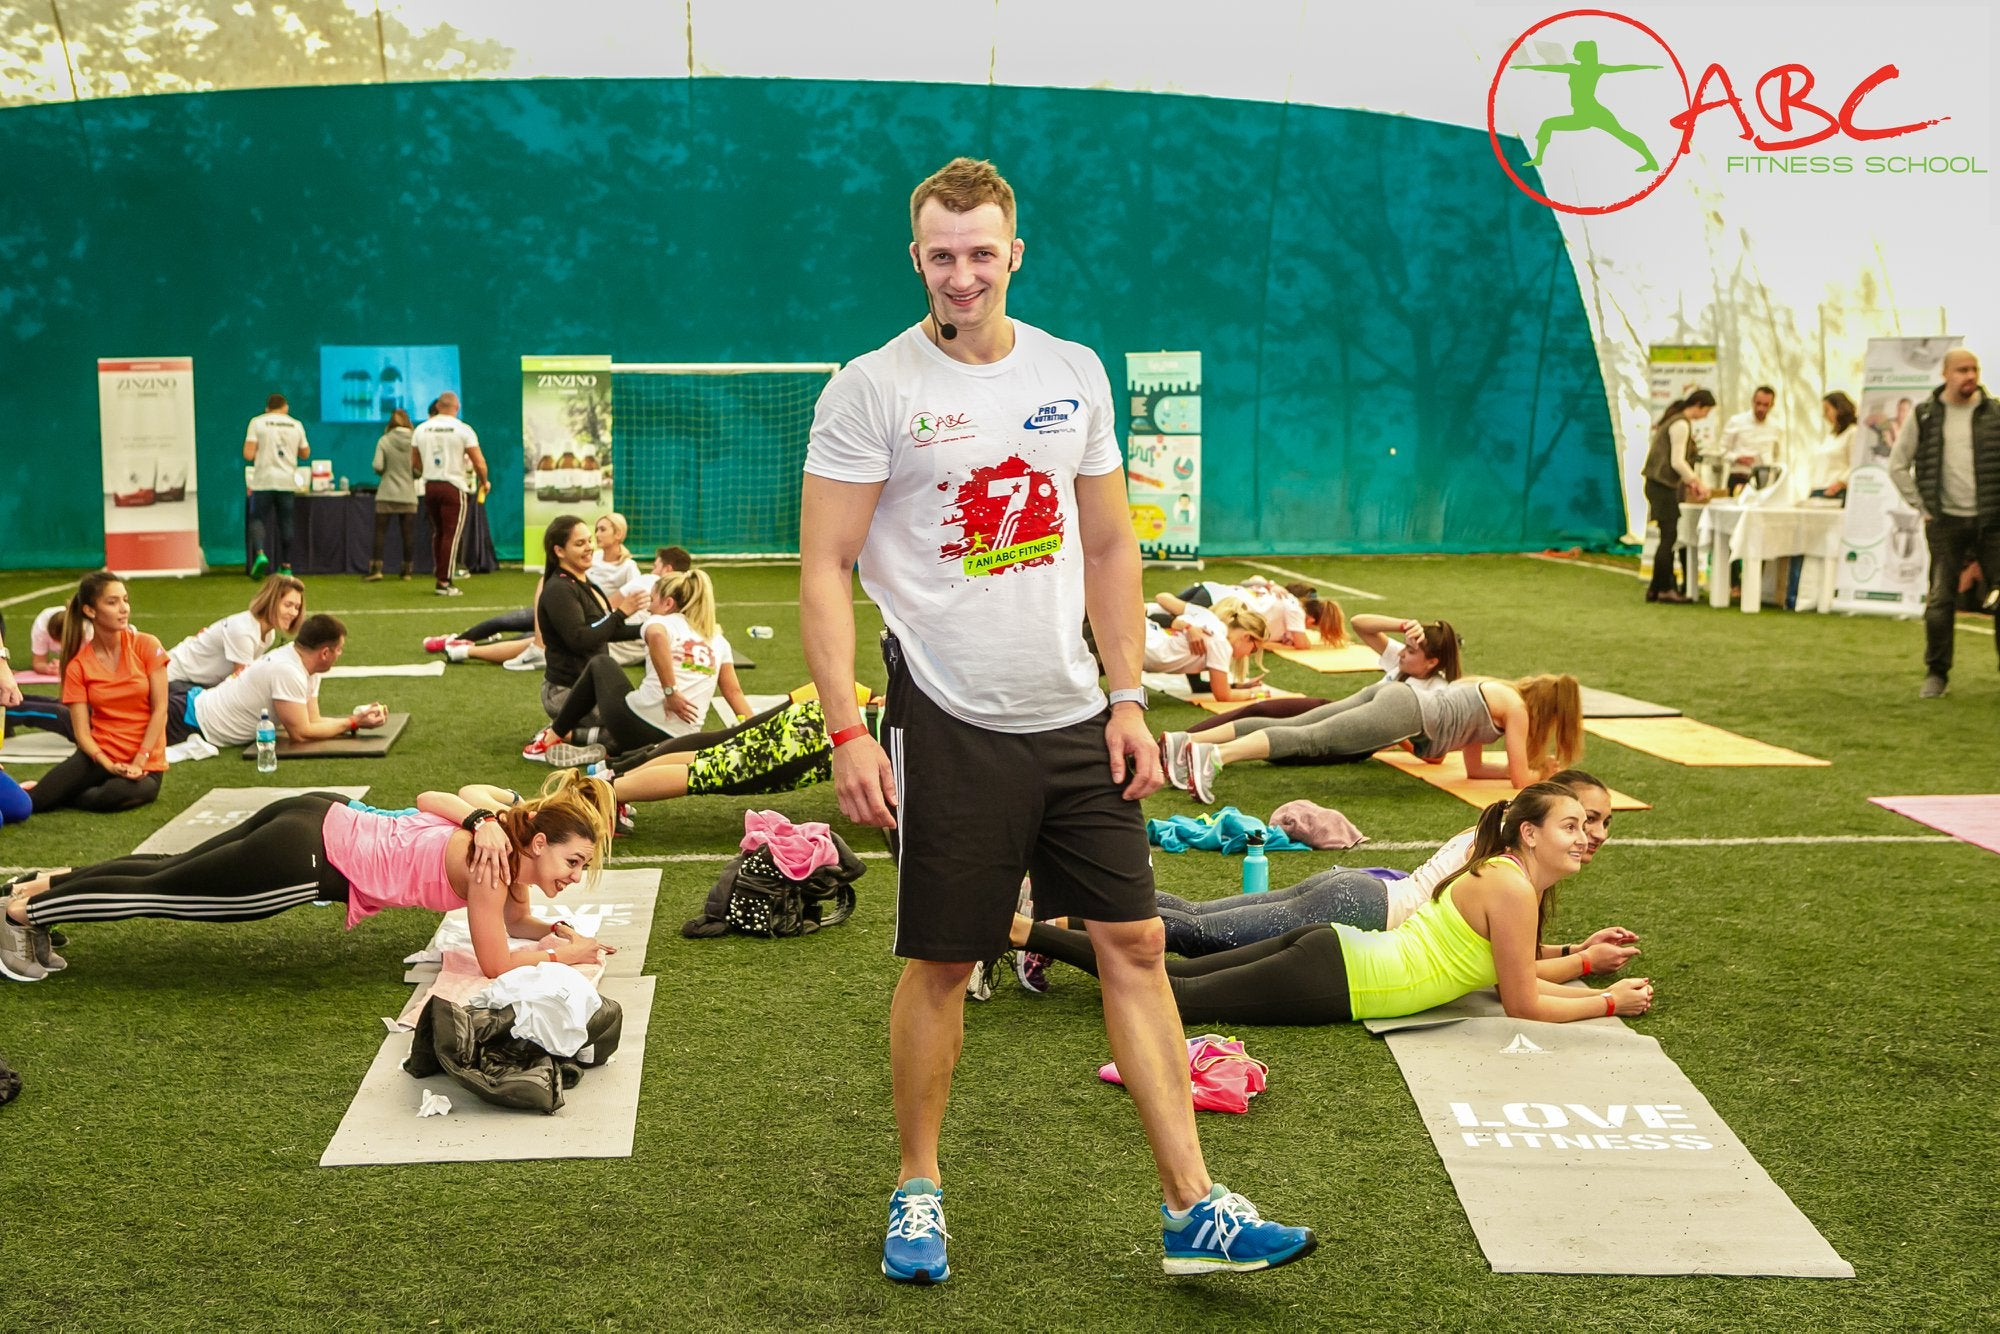 Info: Curs Instructor Fitness si Personal Trainer - ABC Fitness- citește detalii - World of Fitness Romania